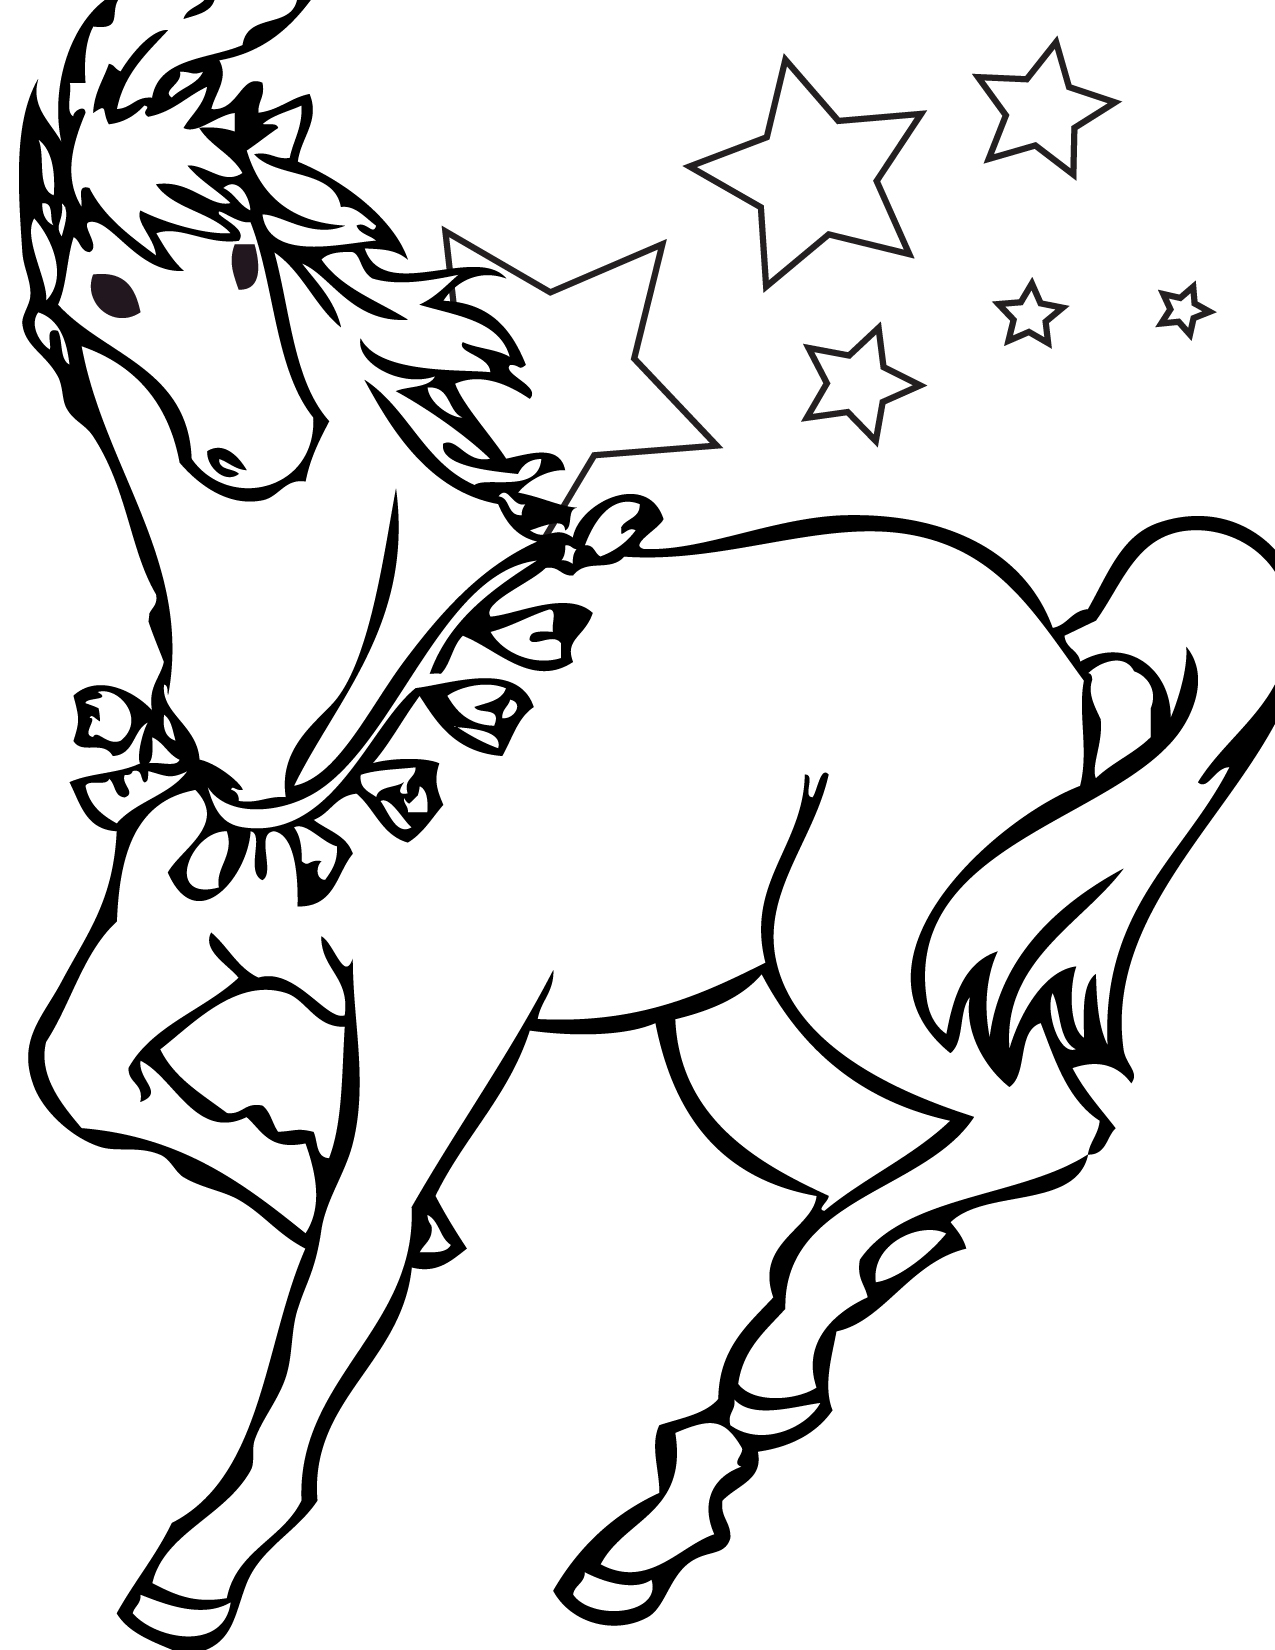 coloring pages of horse realistic horse coloring pages to download and print for free coloring pages horse of